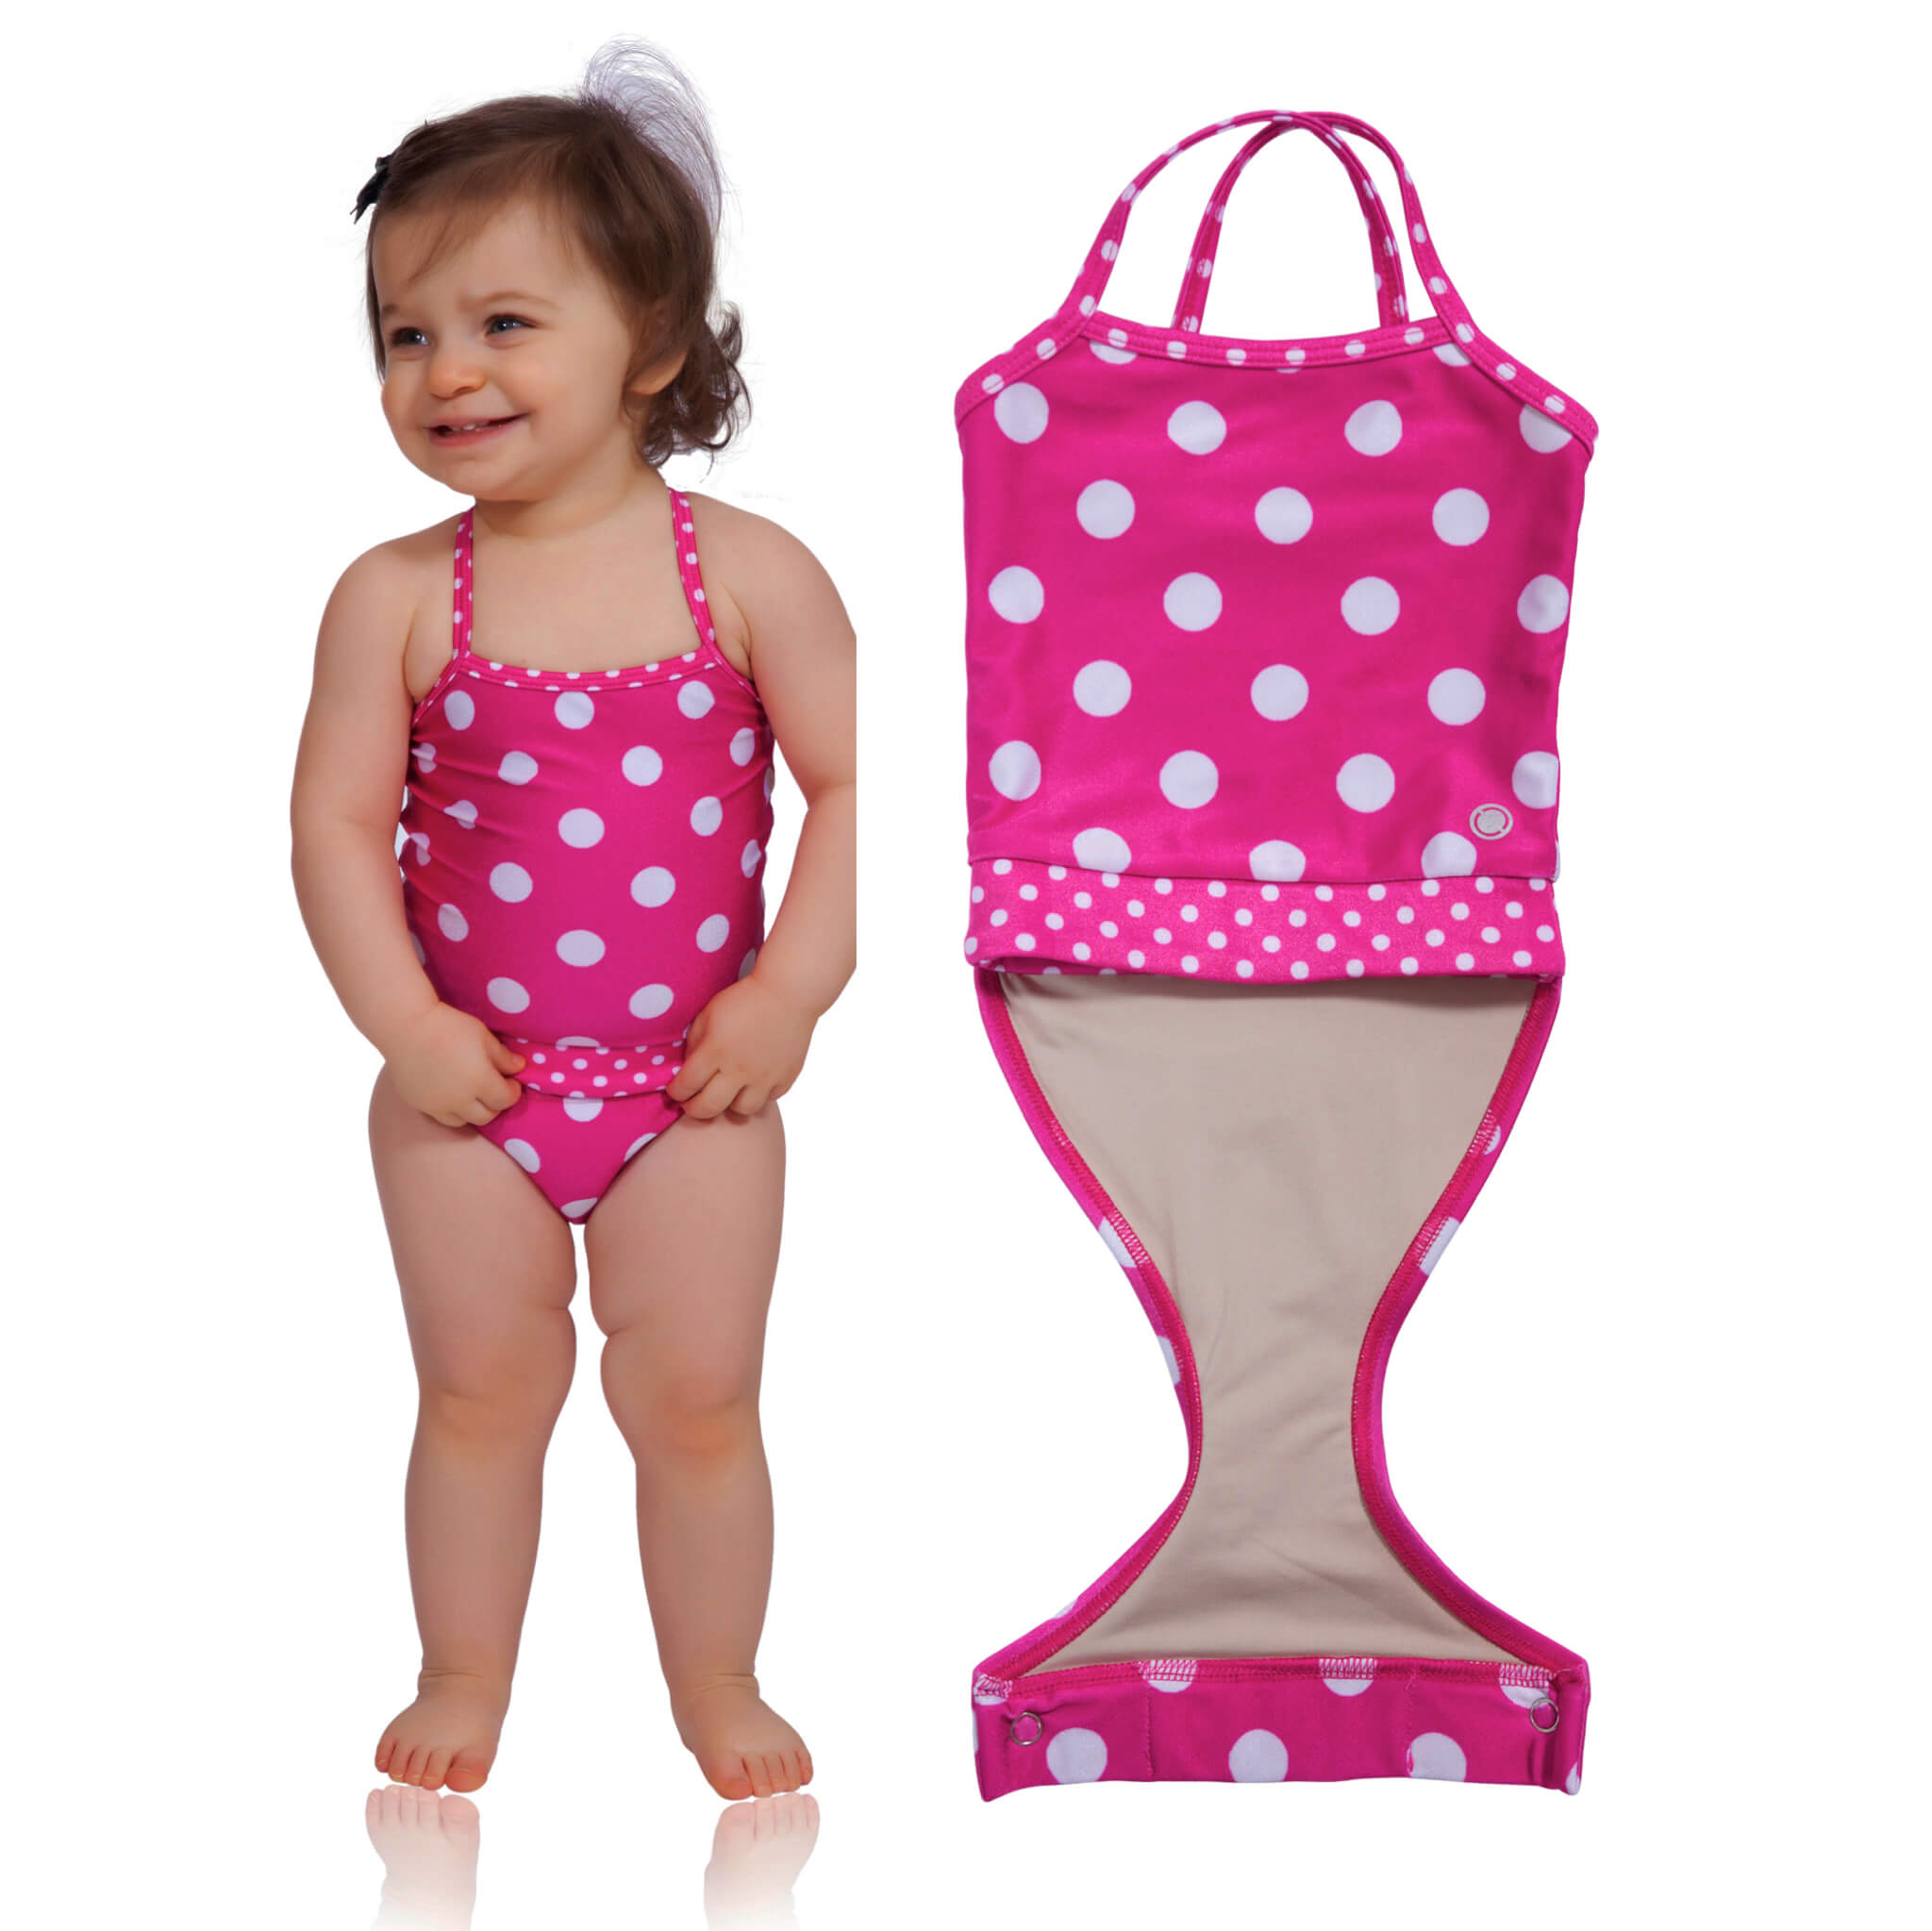 Infant baby girl swimsuit-5491